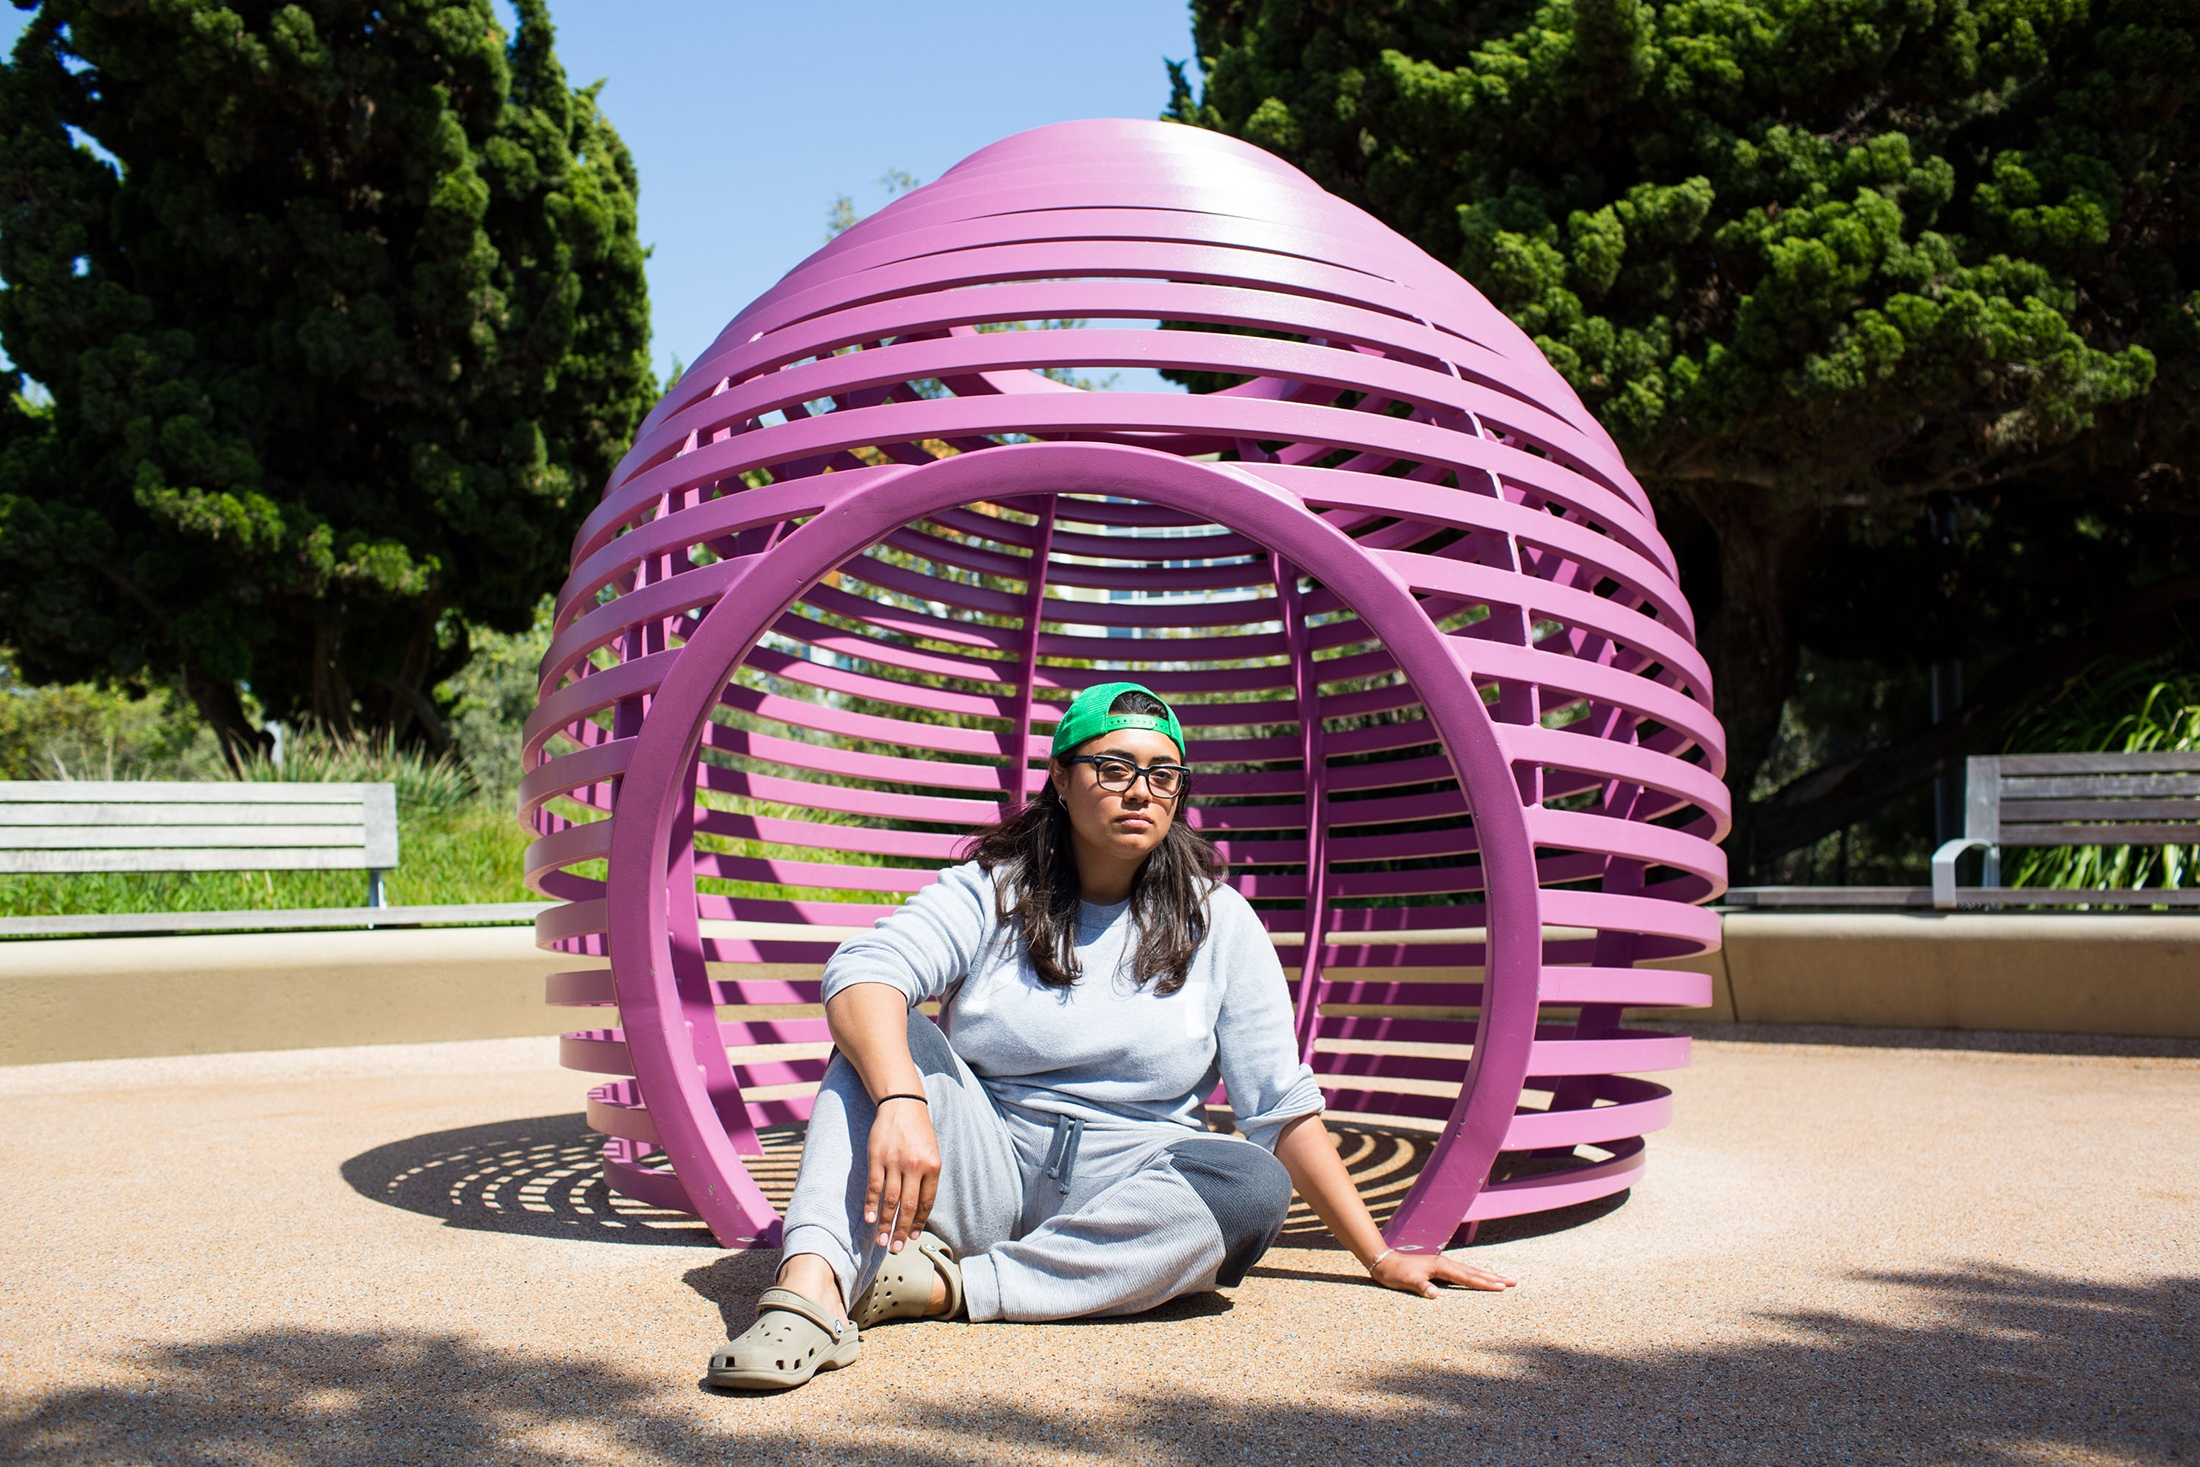 Michelle Ducoing, 24, inside the playground structure where she slept on her first night of homelessness in Santa Monica, California. 'I cried all night': homeless women on their first night on the streets' for the Guardian